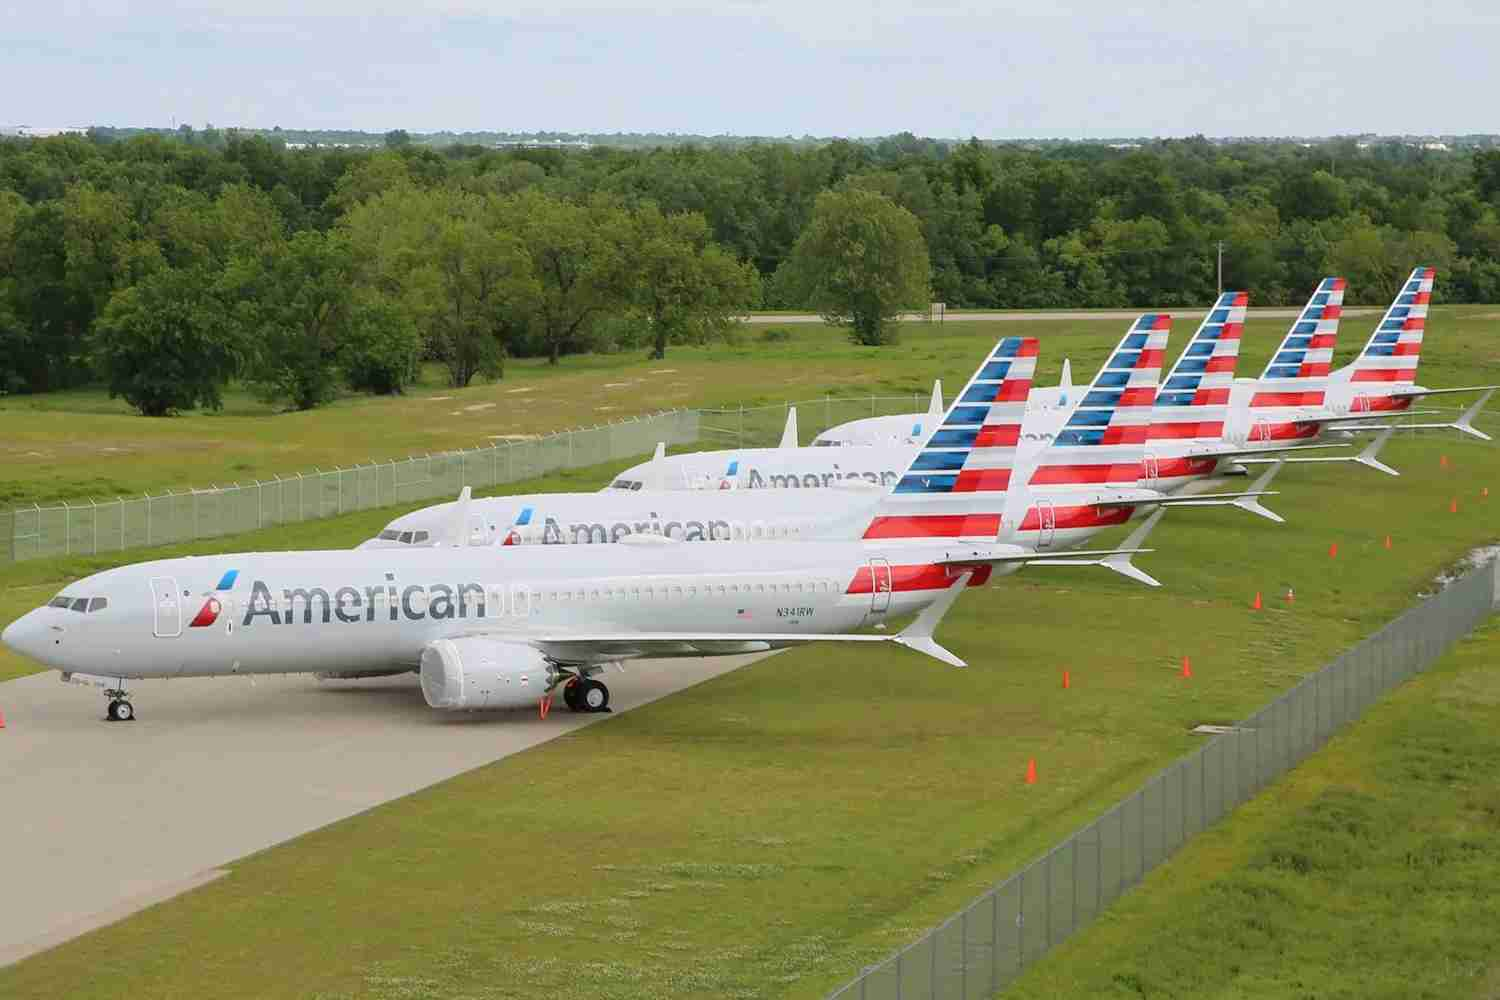 American Airlines 737 MAX 8 aircraft in storage. (Photo courtesy of American Airlines)